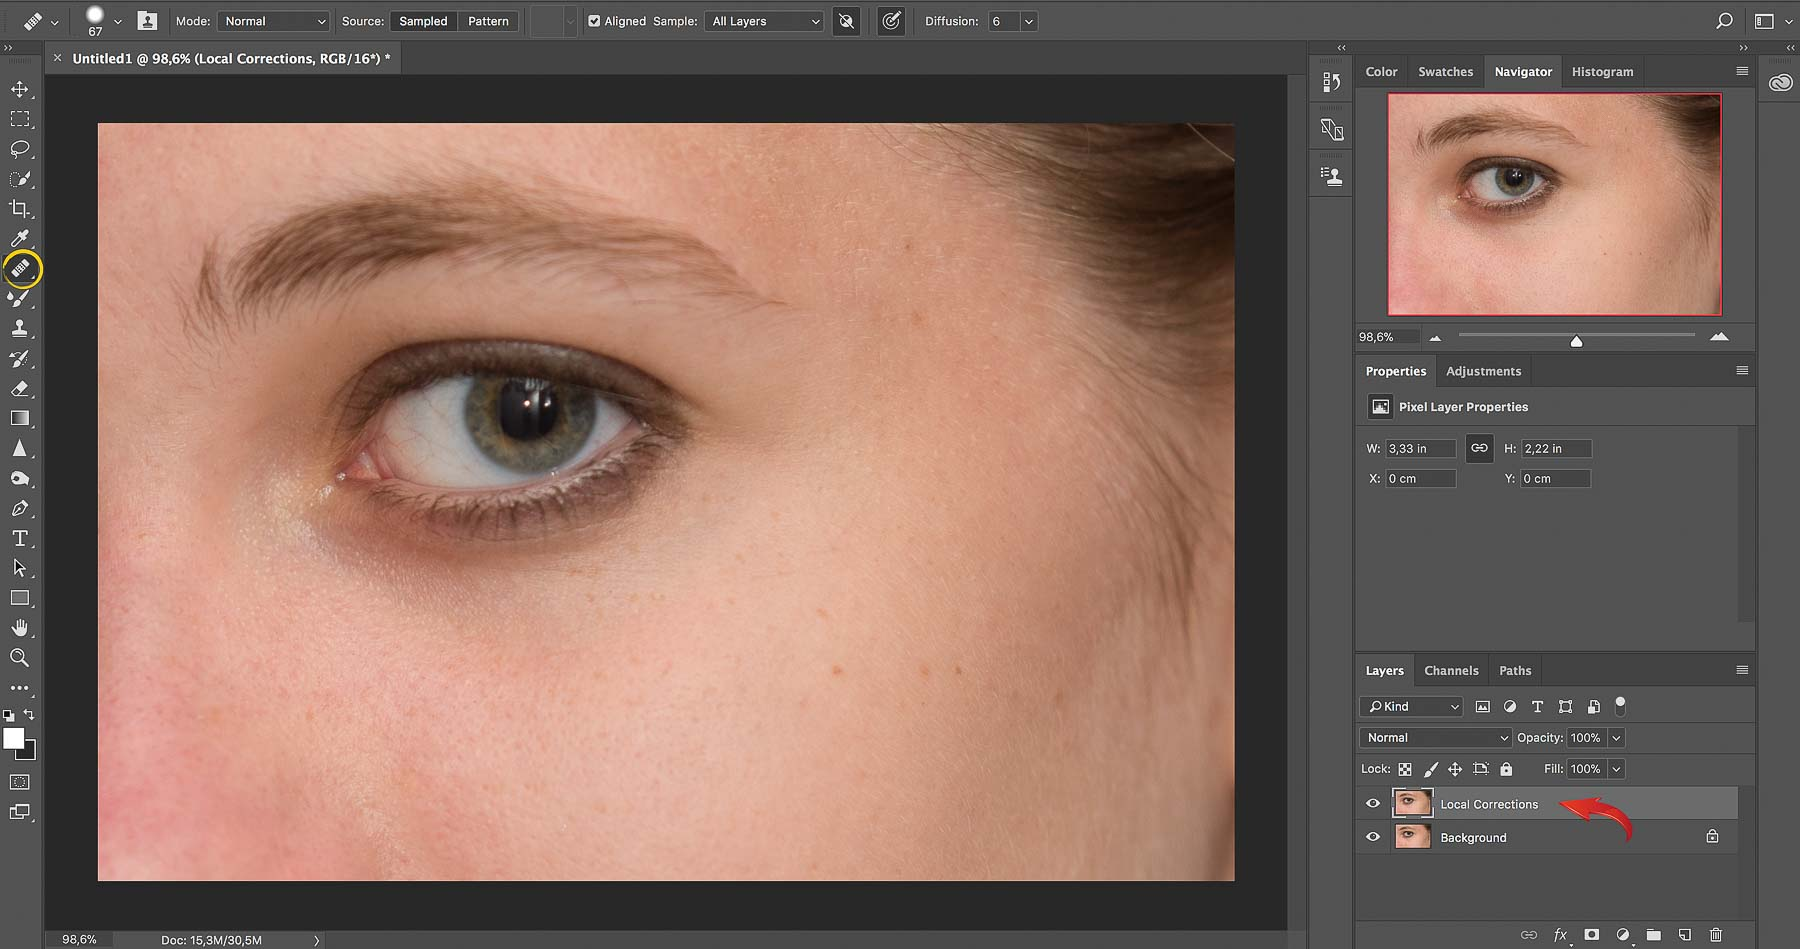 Local Corrections with the Healing Brush | Photoshop Skin Retouching • Portrait Retouching Workflow